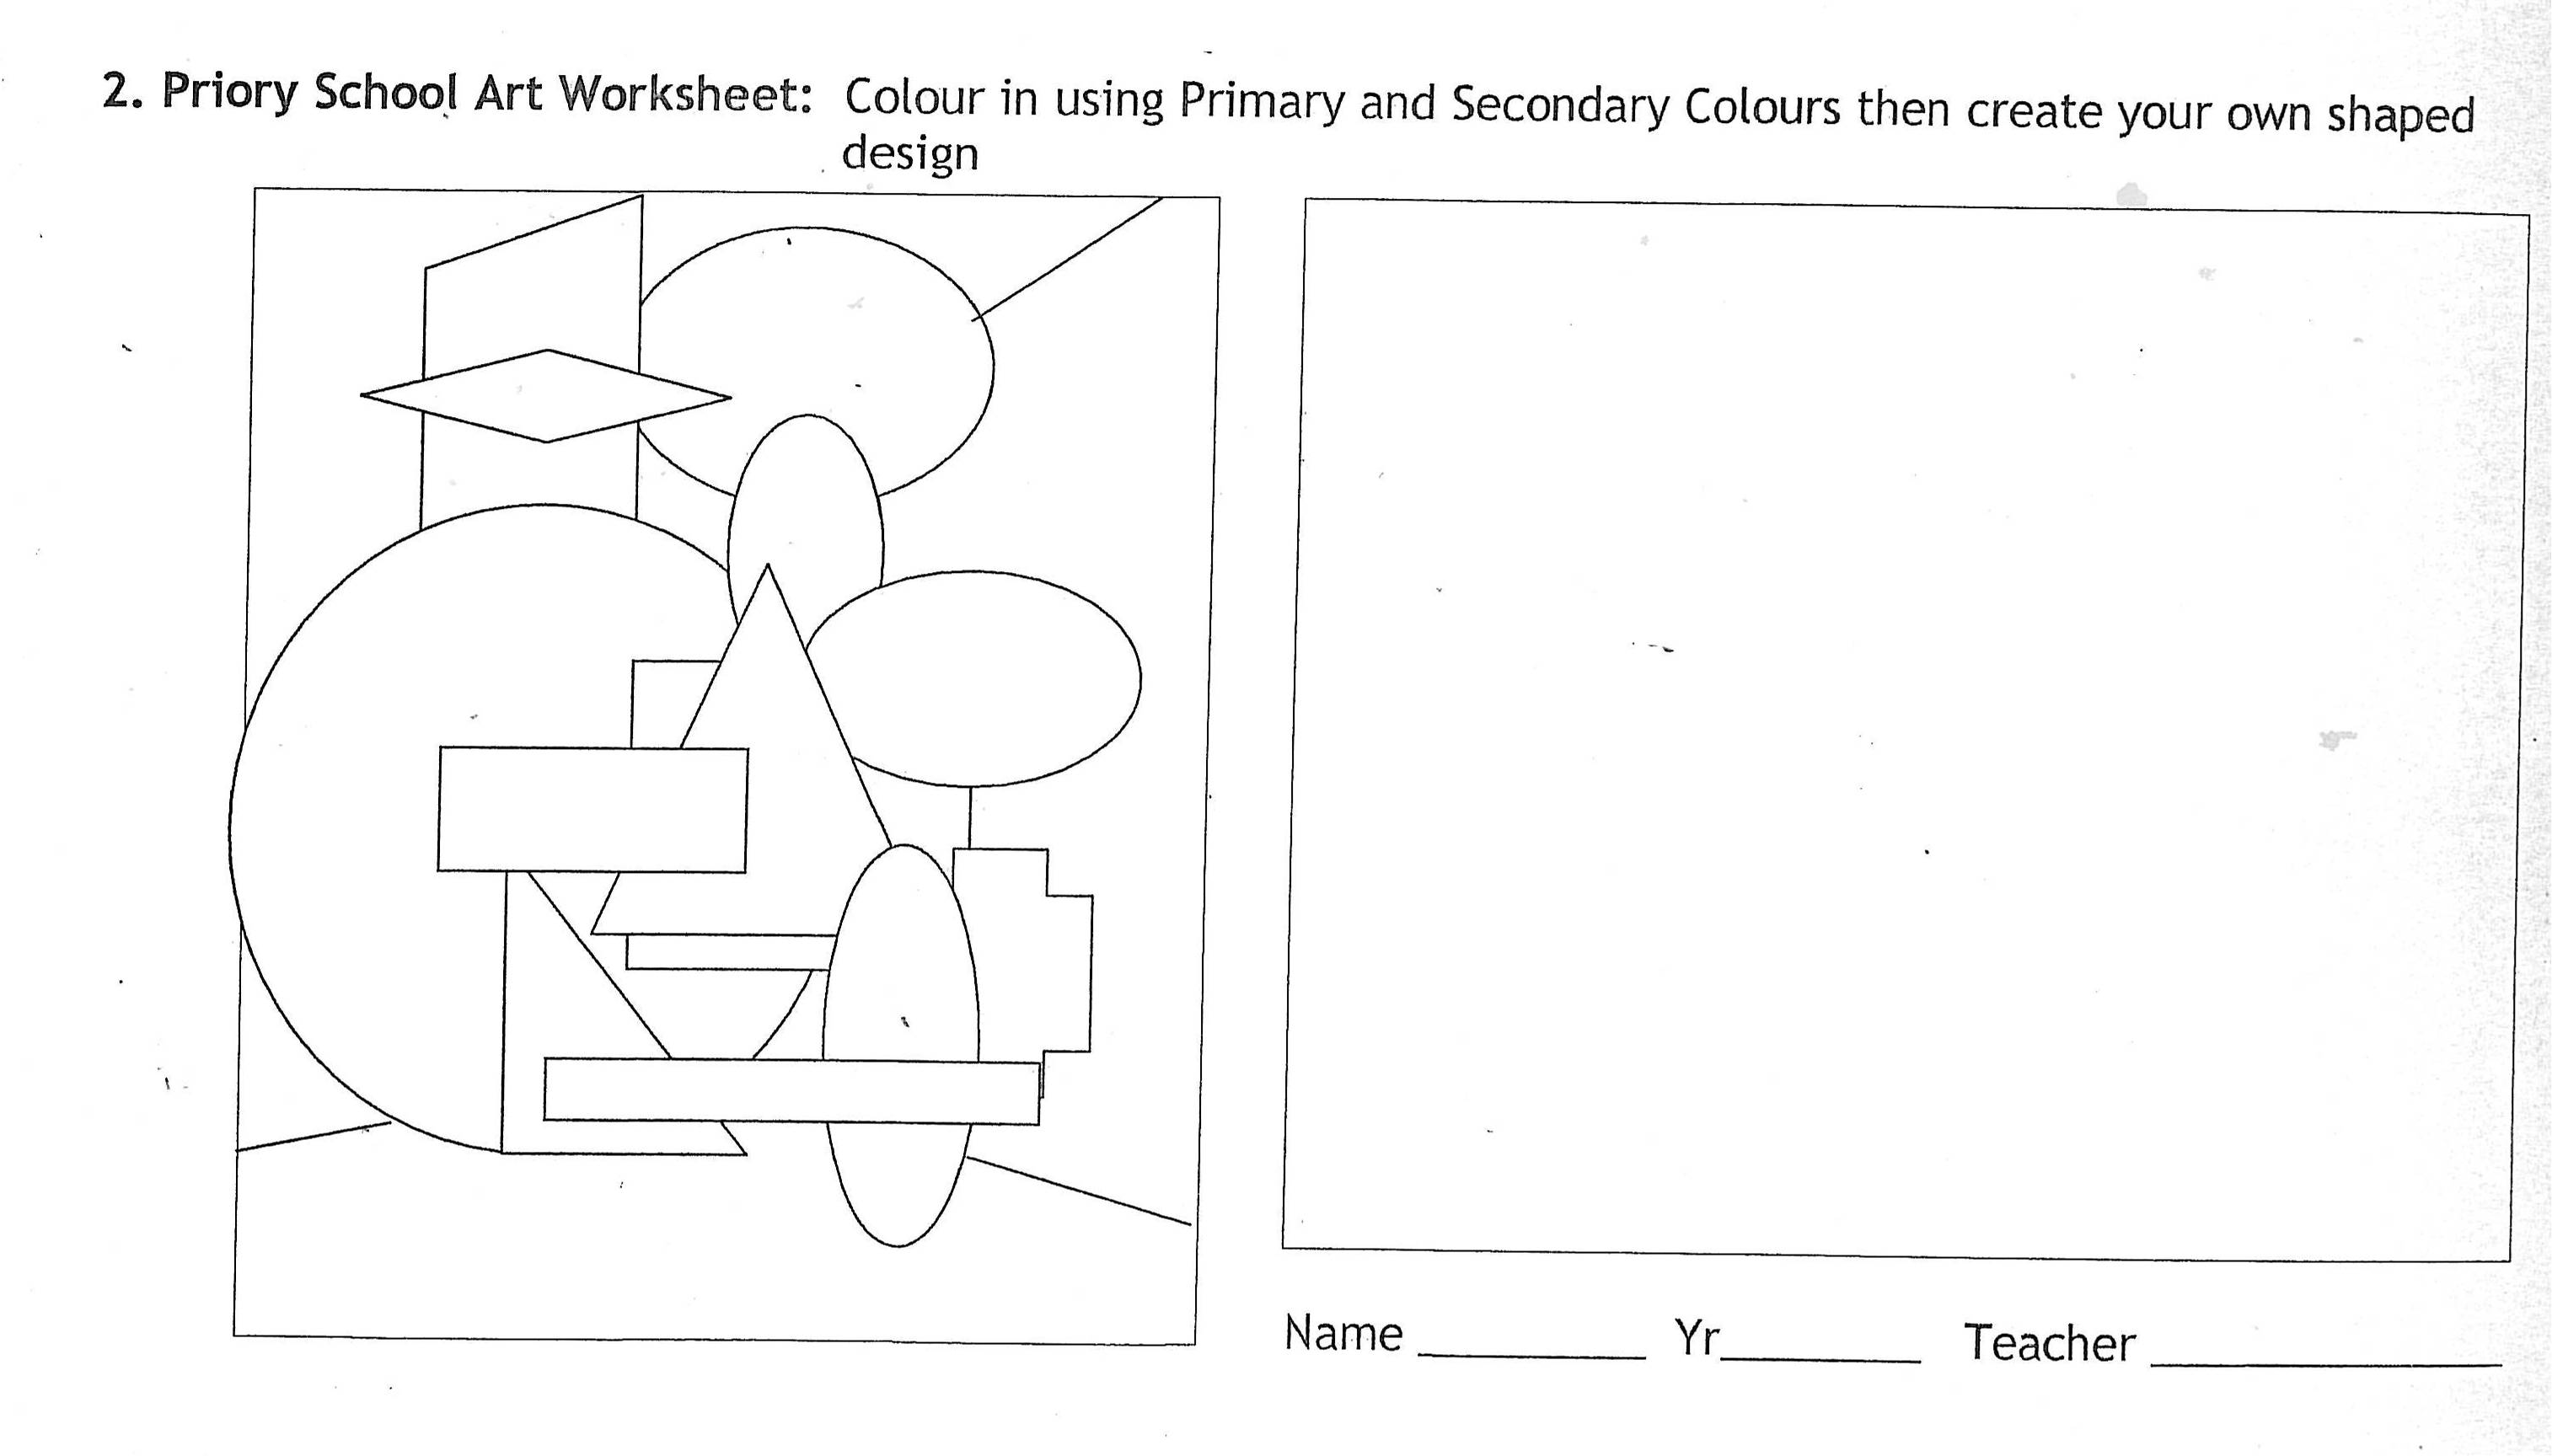 High School Art Worksheet 1